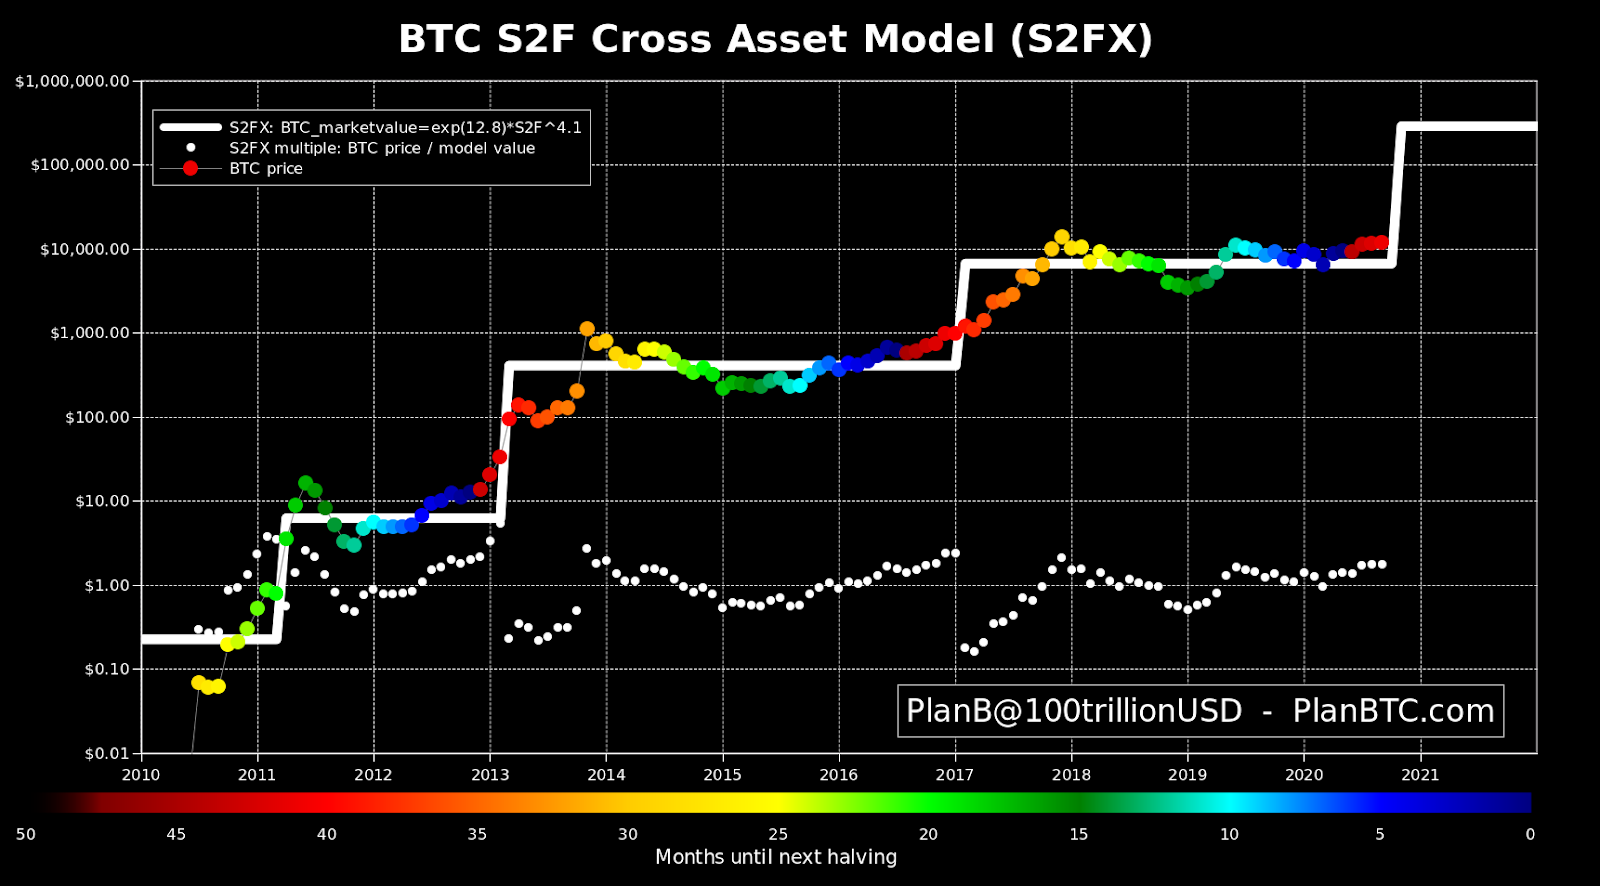 Bitcoin S2FX model as of Sept. 1, 2020